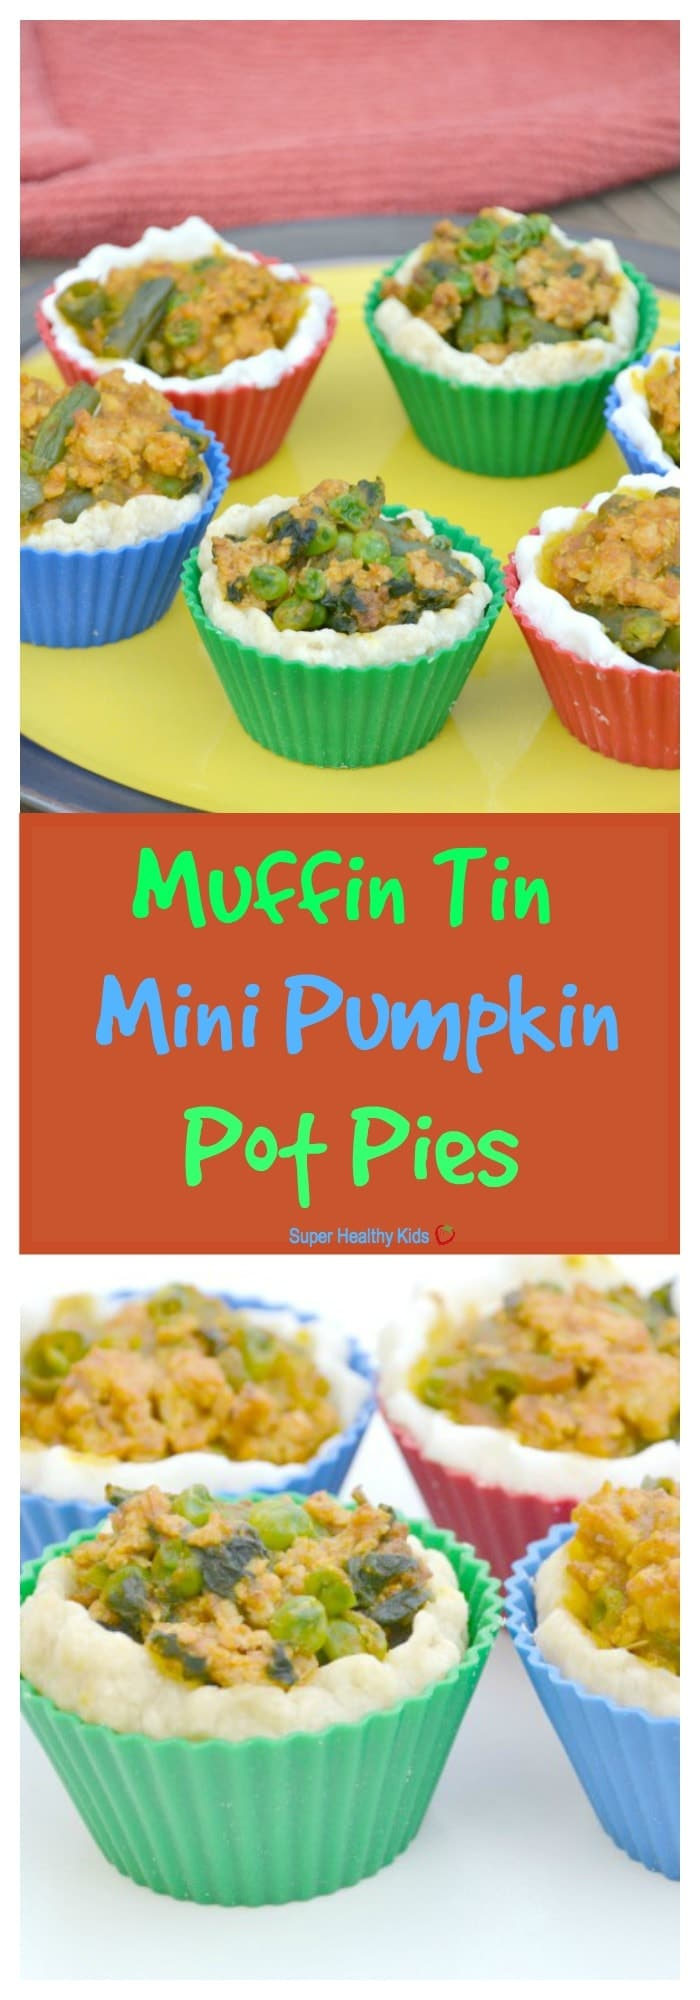 FOOD - Muffin Tin Mini Pumpkin Pot Pies. Use Thanksgiving leftovers to make this quick weeknight meal! http://www.superhealthykids.com/muffin-tin-mini-pumpkin-pot-pies/